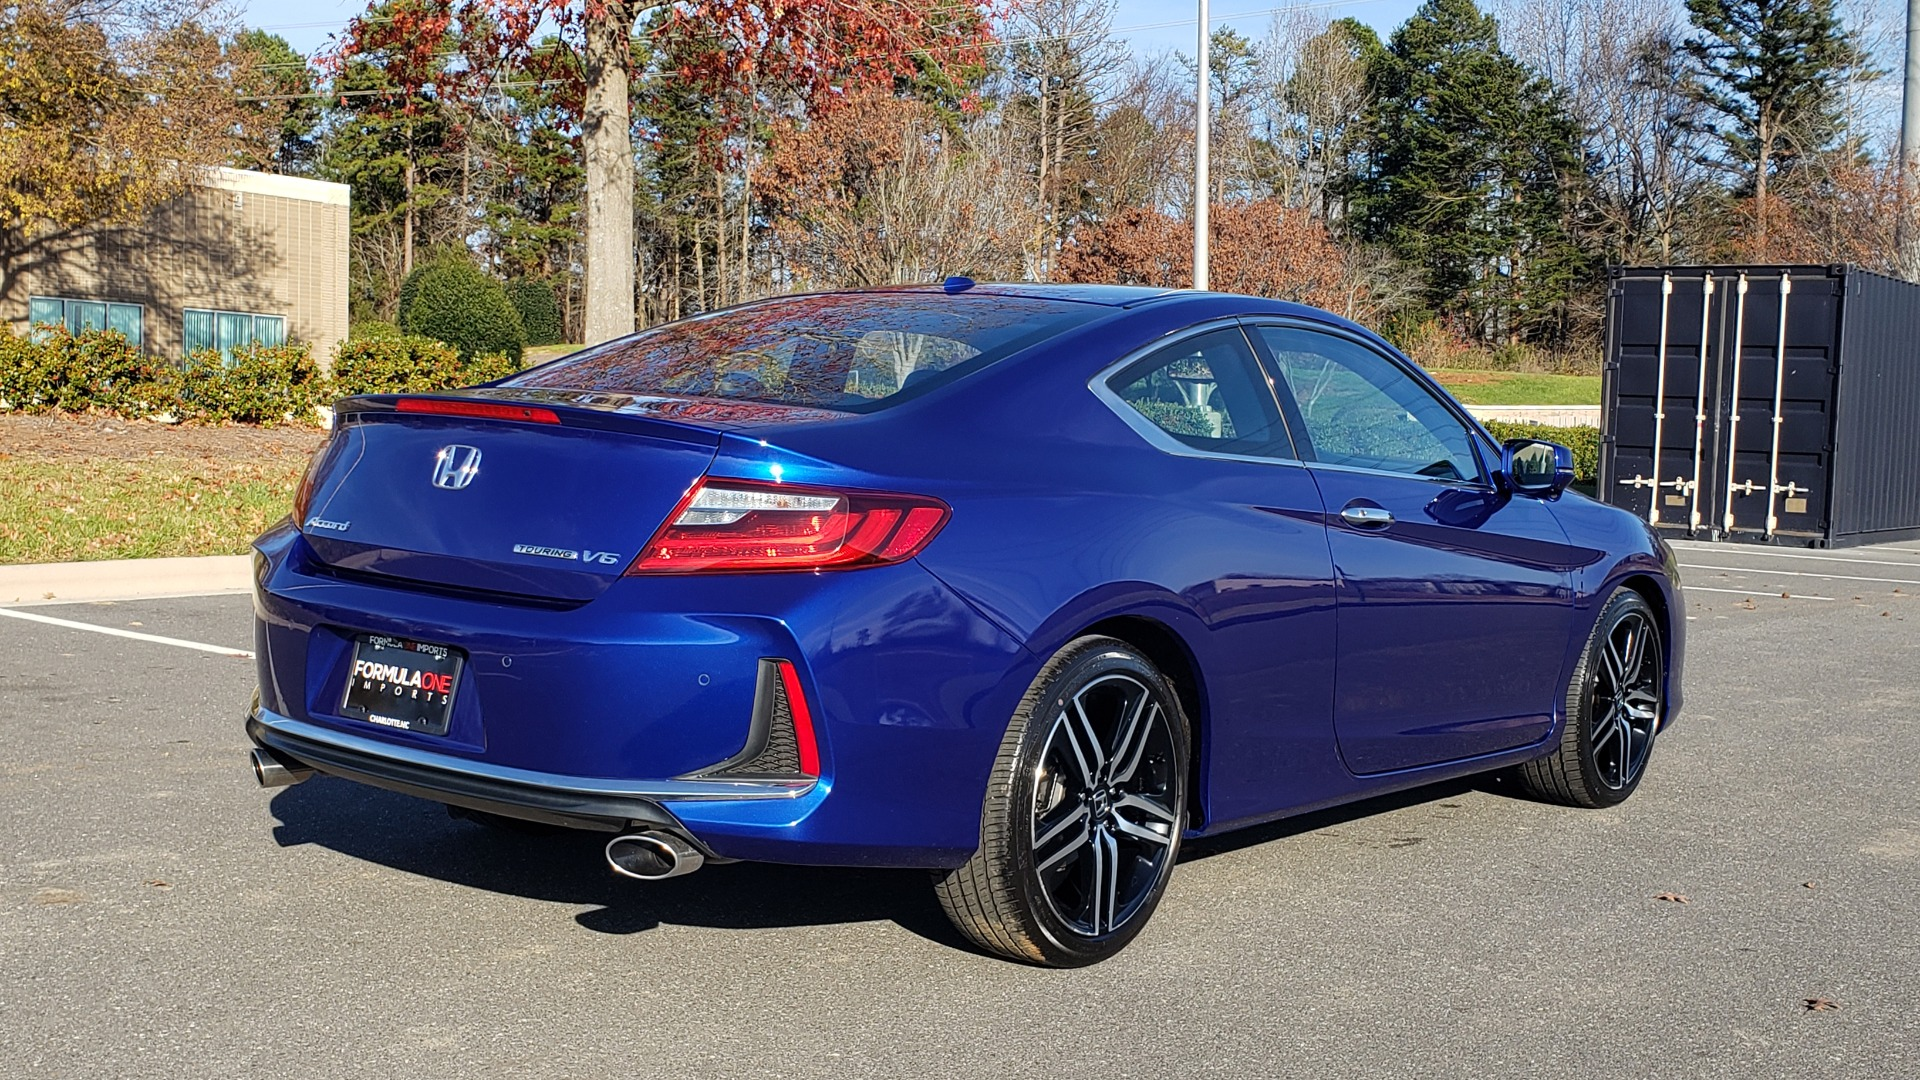 Used 2017 Honda ACCORD COUPE TOURING V6 / 2-DR / NAV / SUNROOF / LANEWATCH / CMBS for sale Sold at Formula Imports in Charlotte NC 28227 8